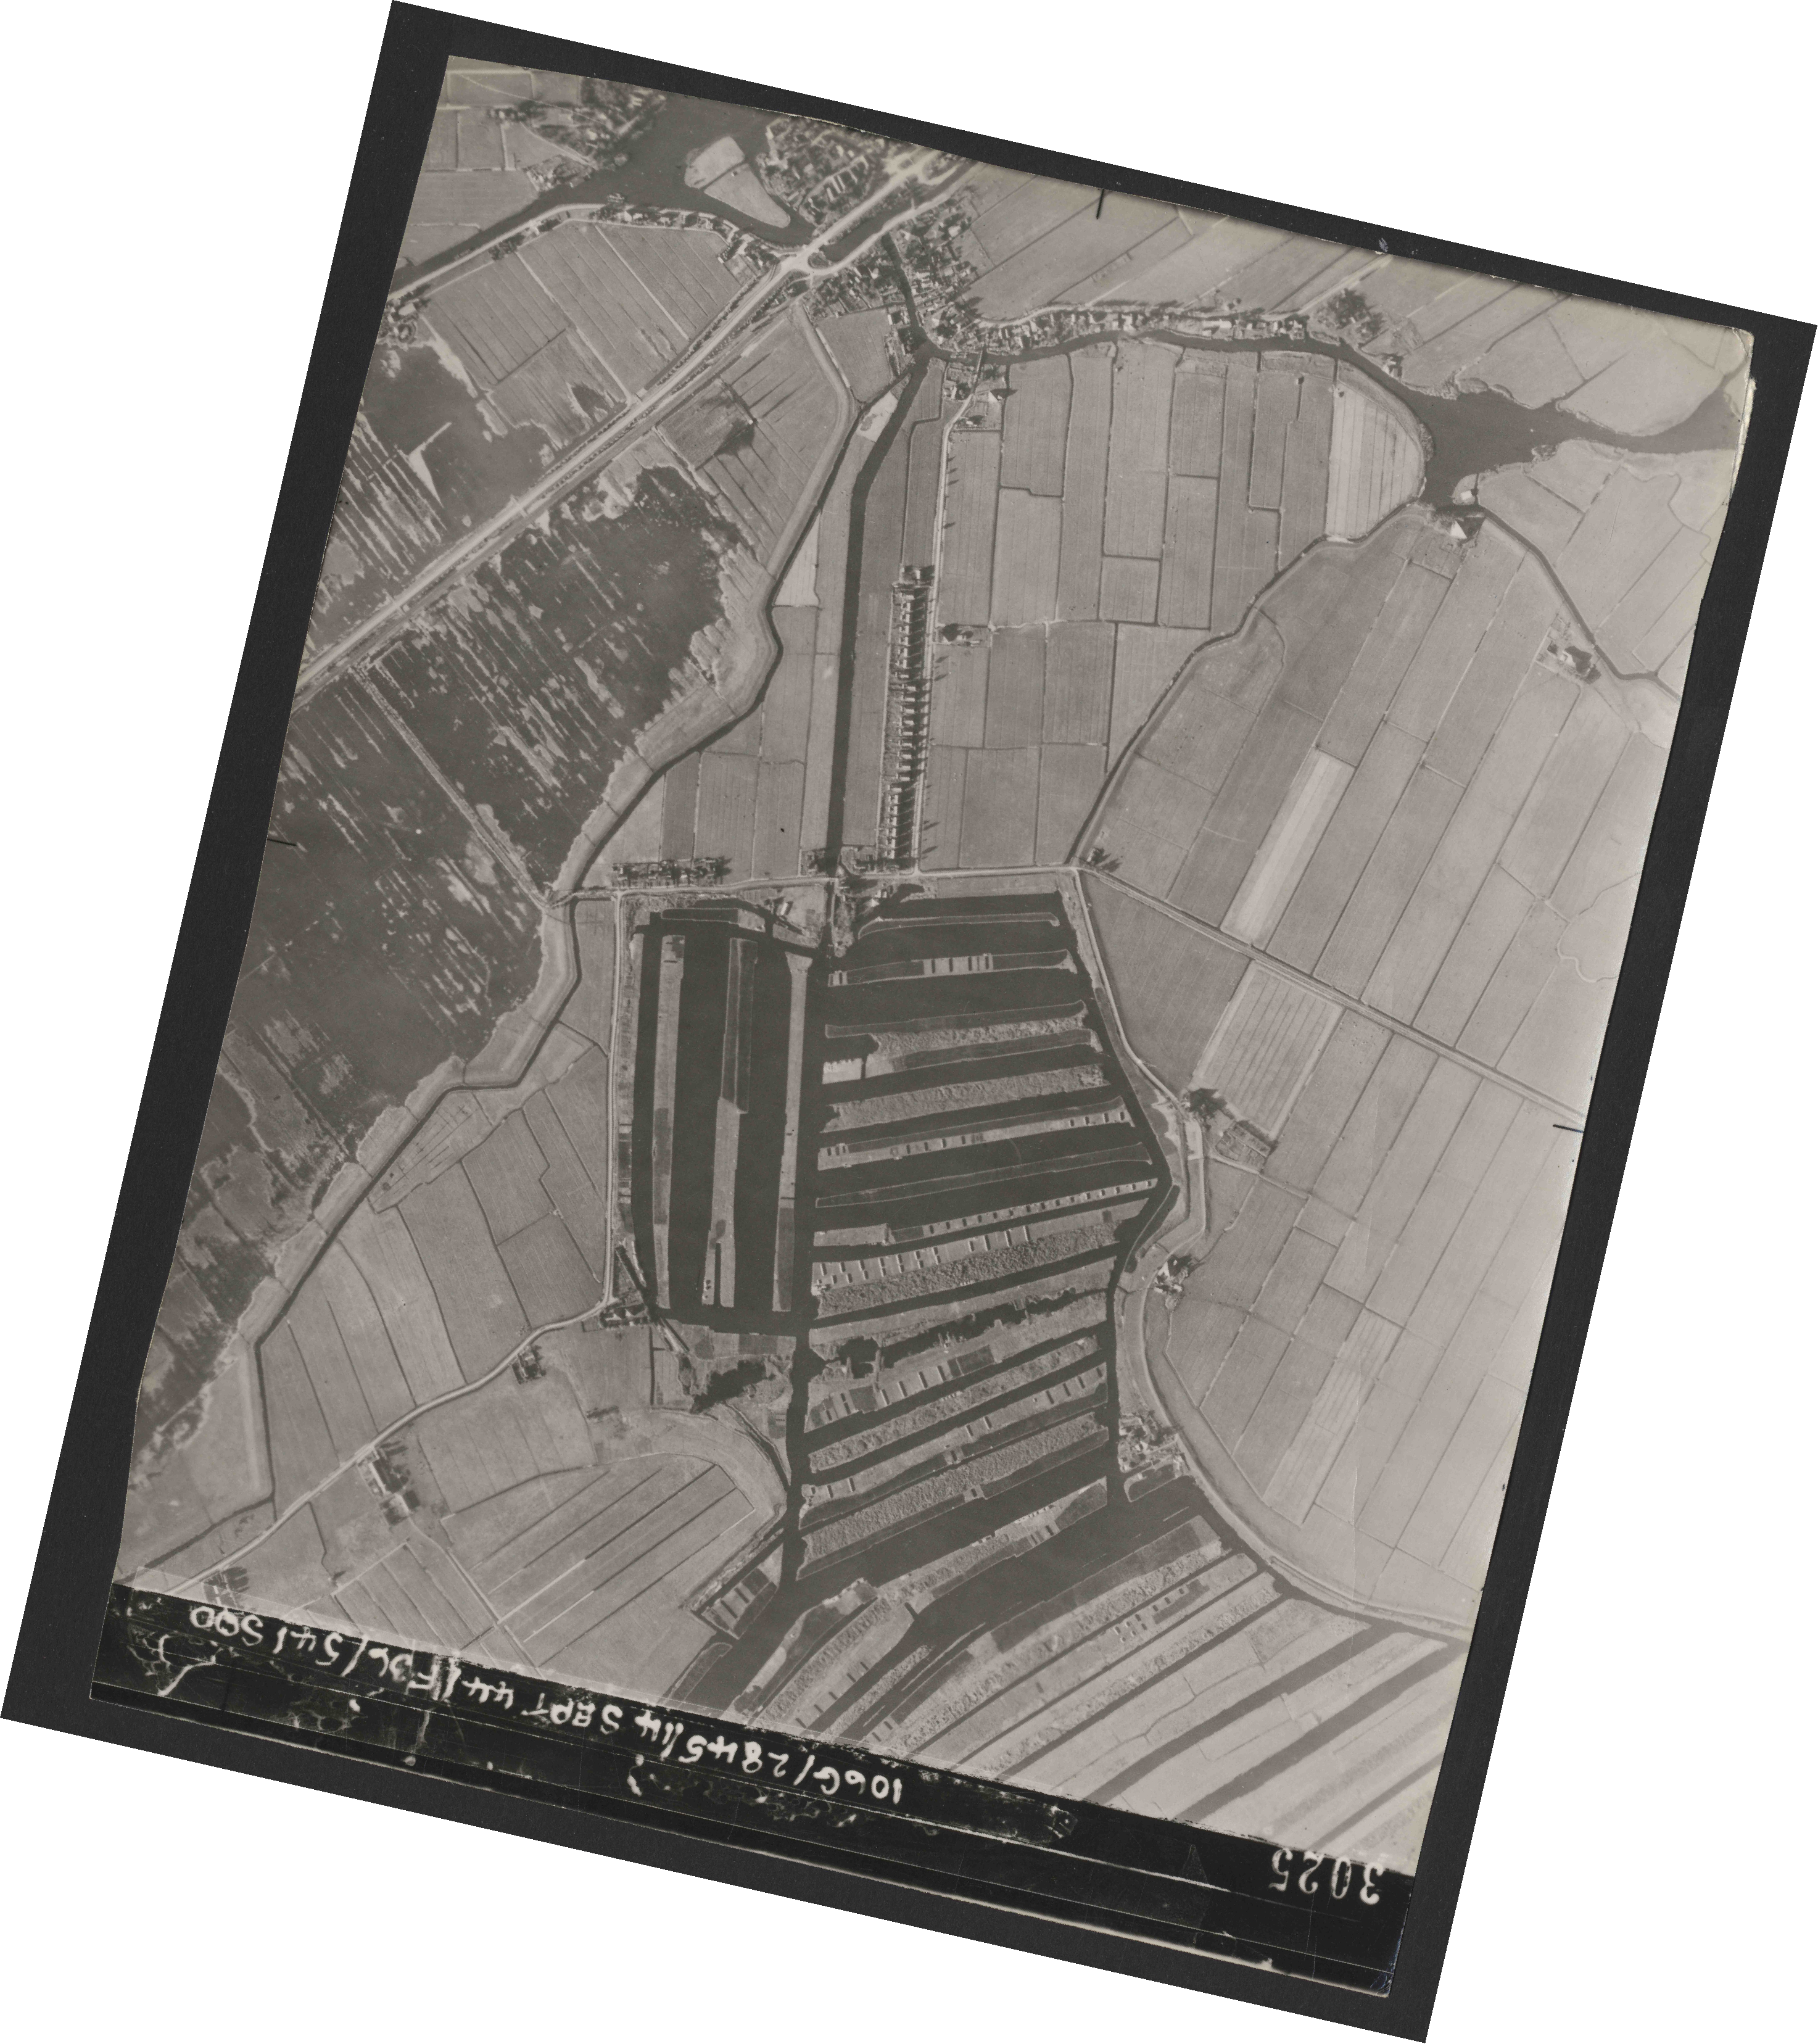 Collection RAF aerial photos 1940-1945 - flight 299, run 08, photo 3025